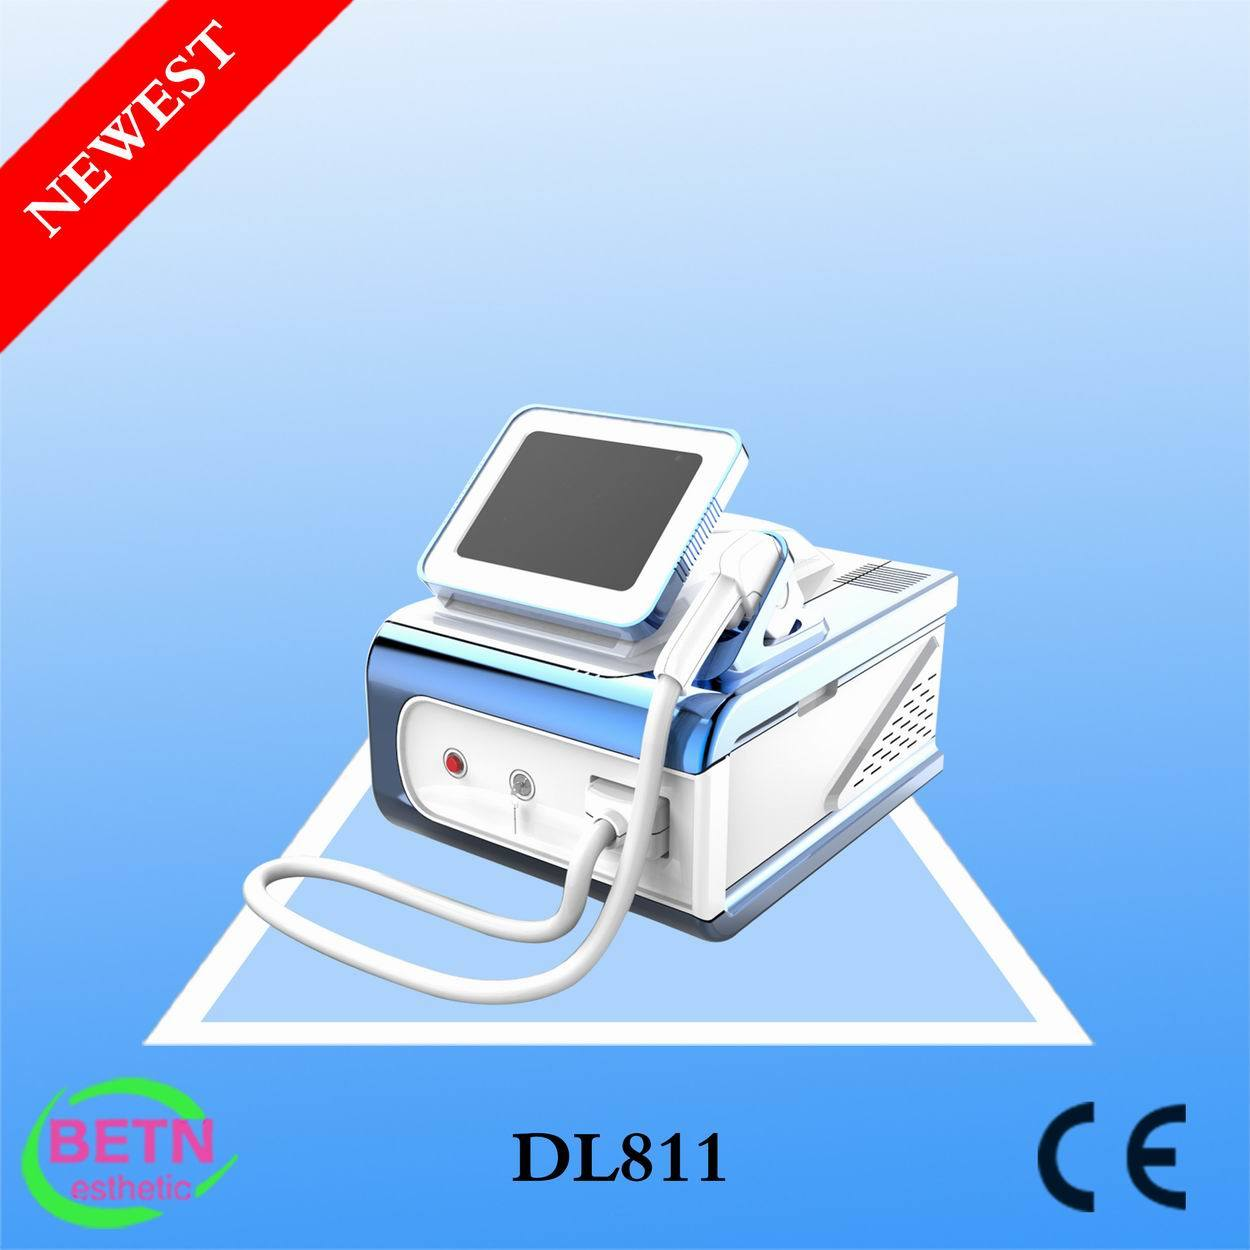 Beir 2016 Newest 810mm Portable Dental Diode Laser Vacuum Hair Removal Diode Laser